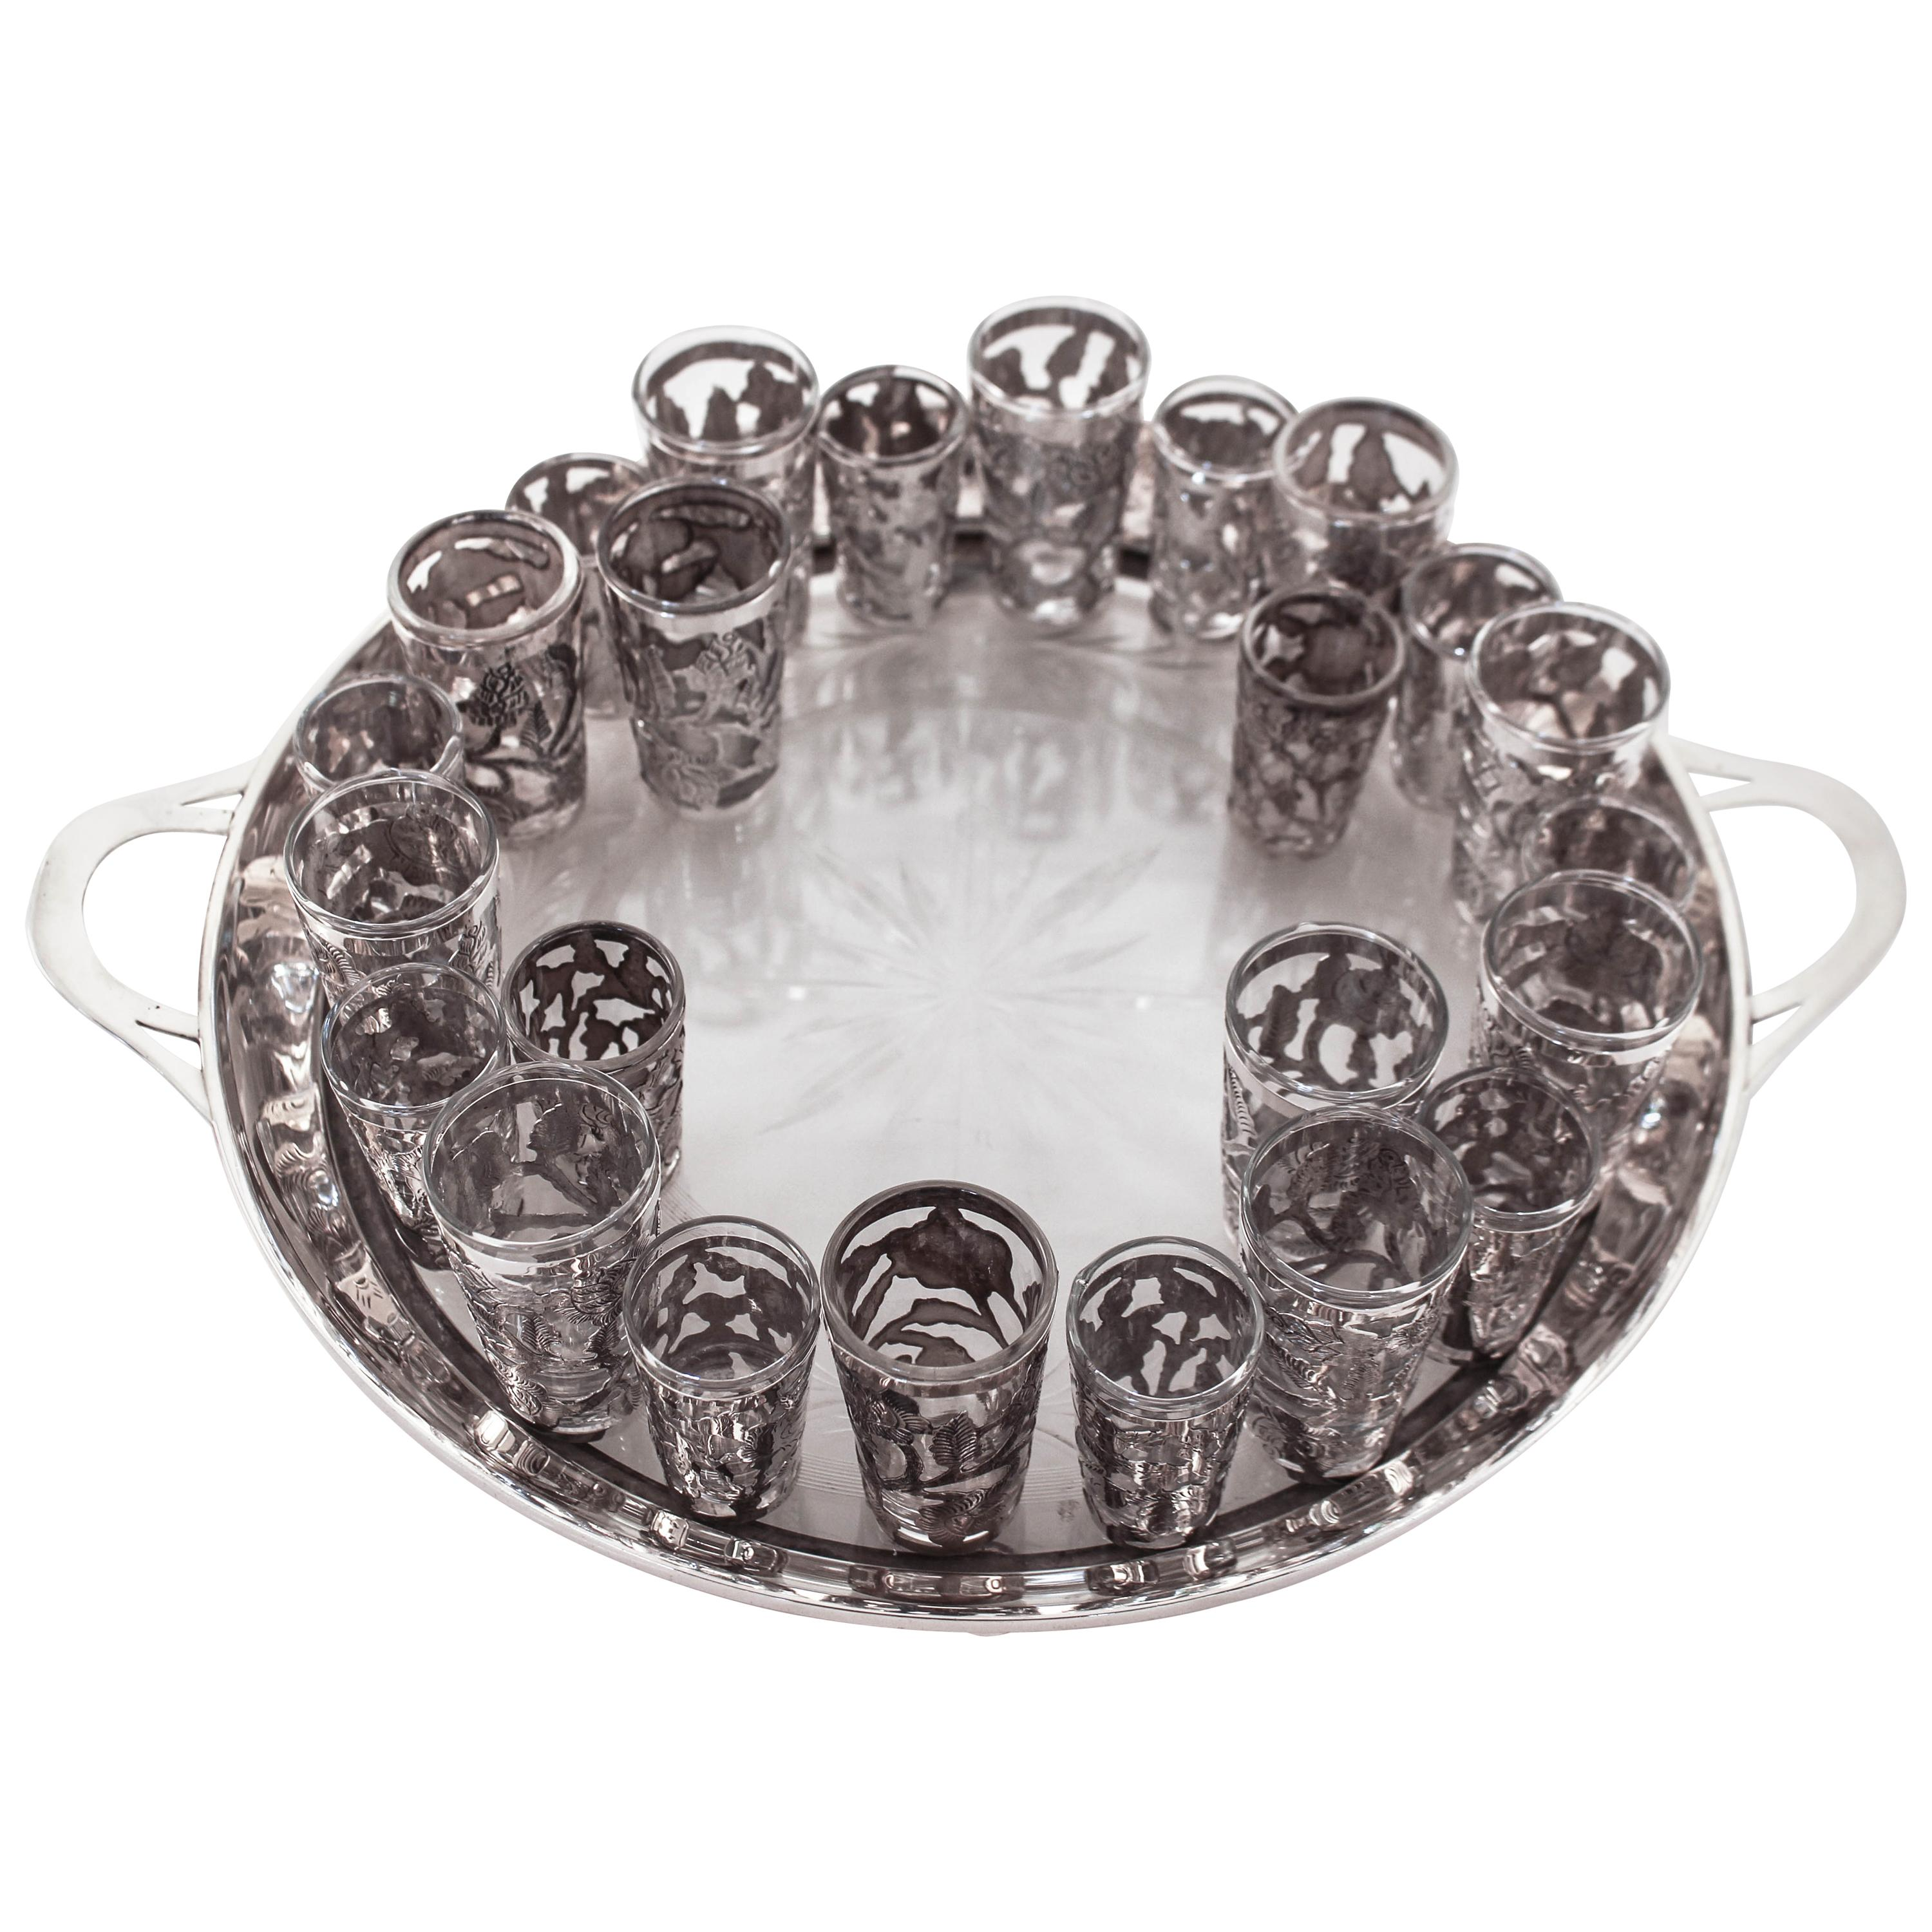 Sterling Liquor Set with Tray